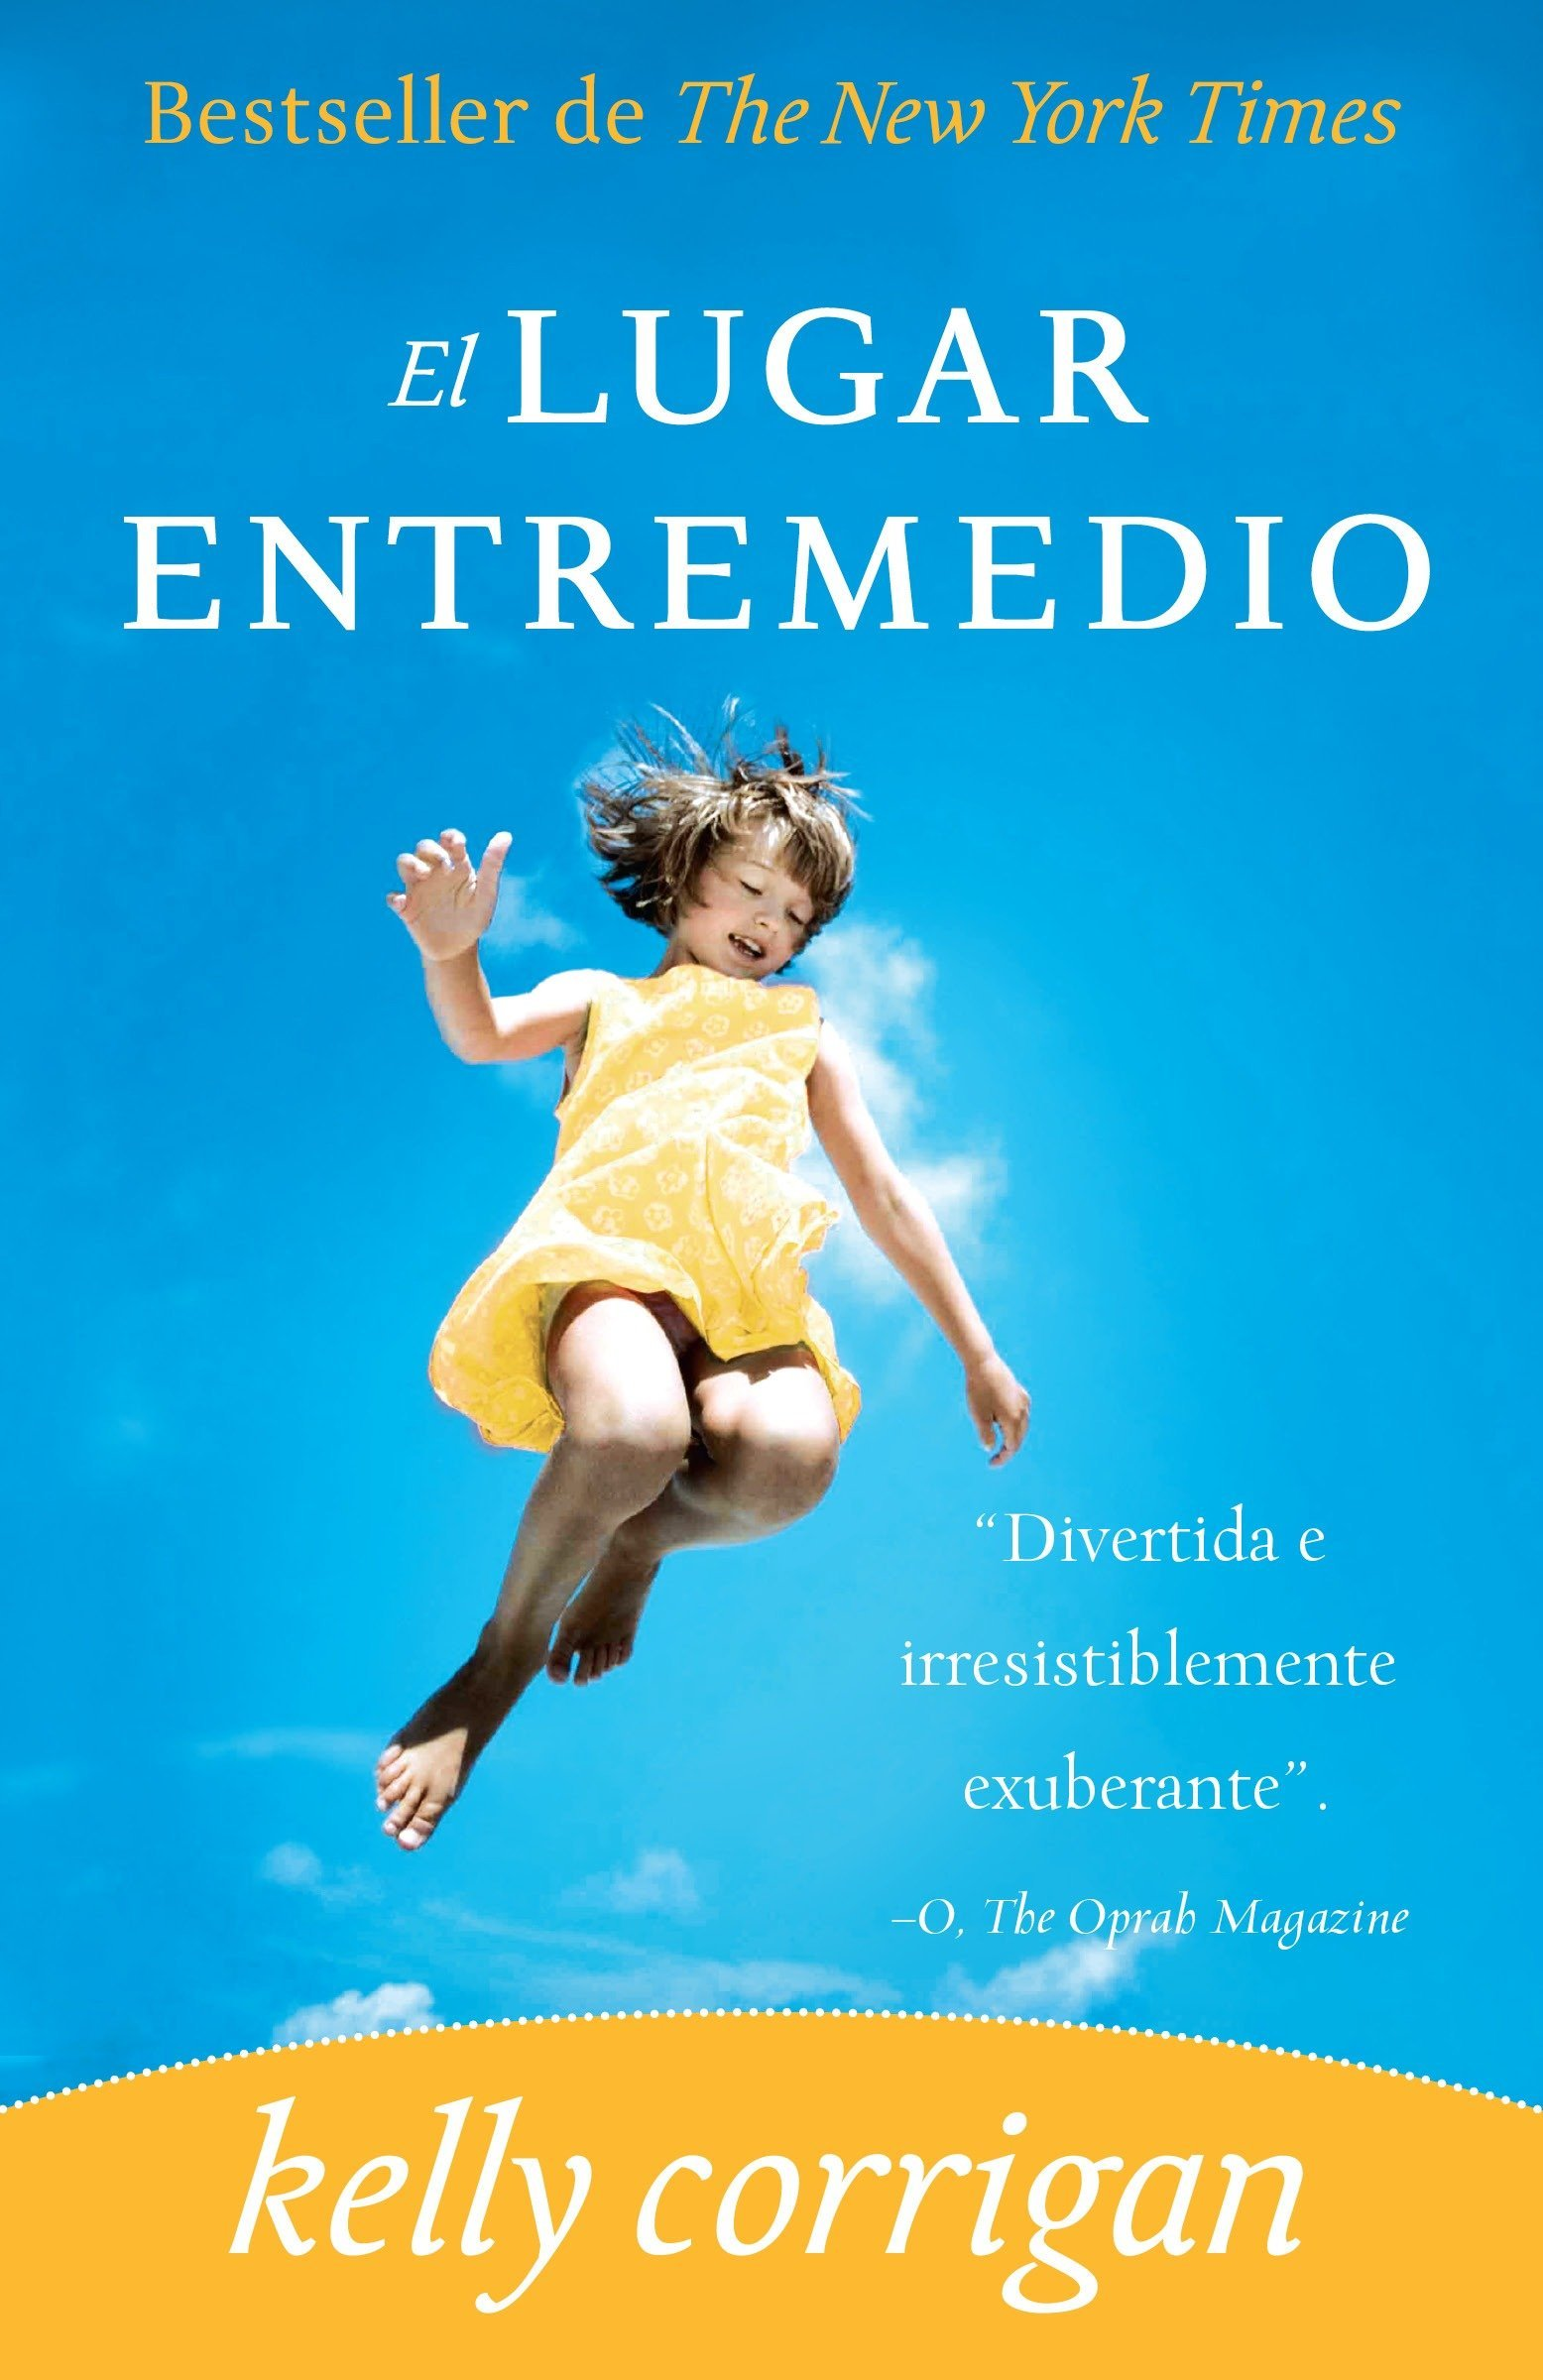 El lugar entremedio (Spanish Edition) (Spanish) Paperback – March 9, 2010